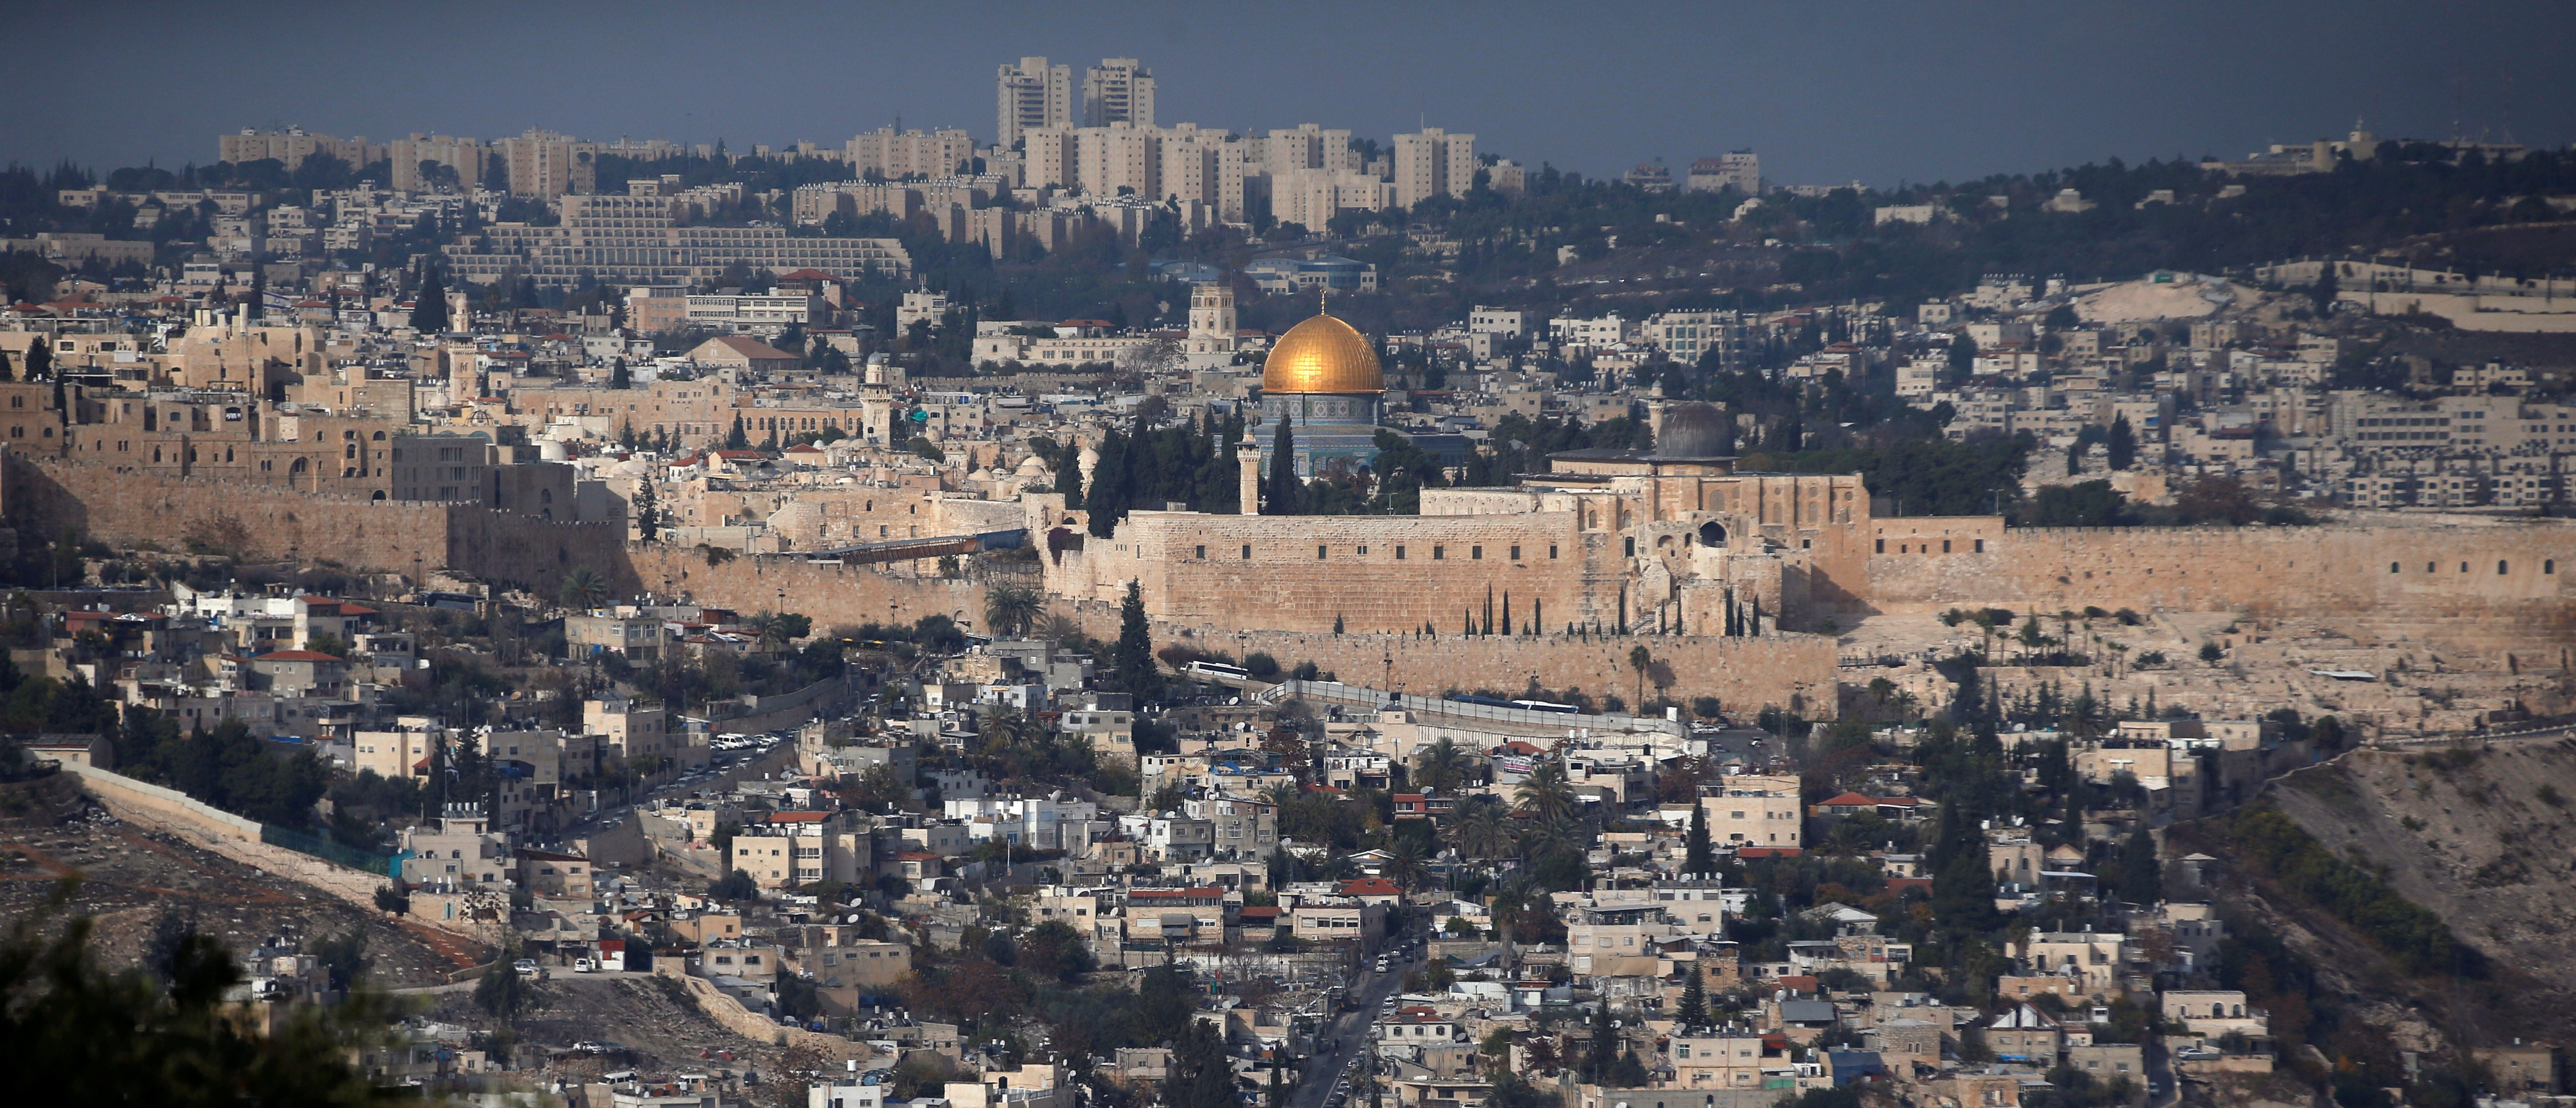 sursa imaginii https://www.brookings.edu/blog/markaz/2017/12/05/why-is-trump-about-to-declare-jerusalem-the-capital-of-israel/